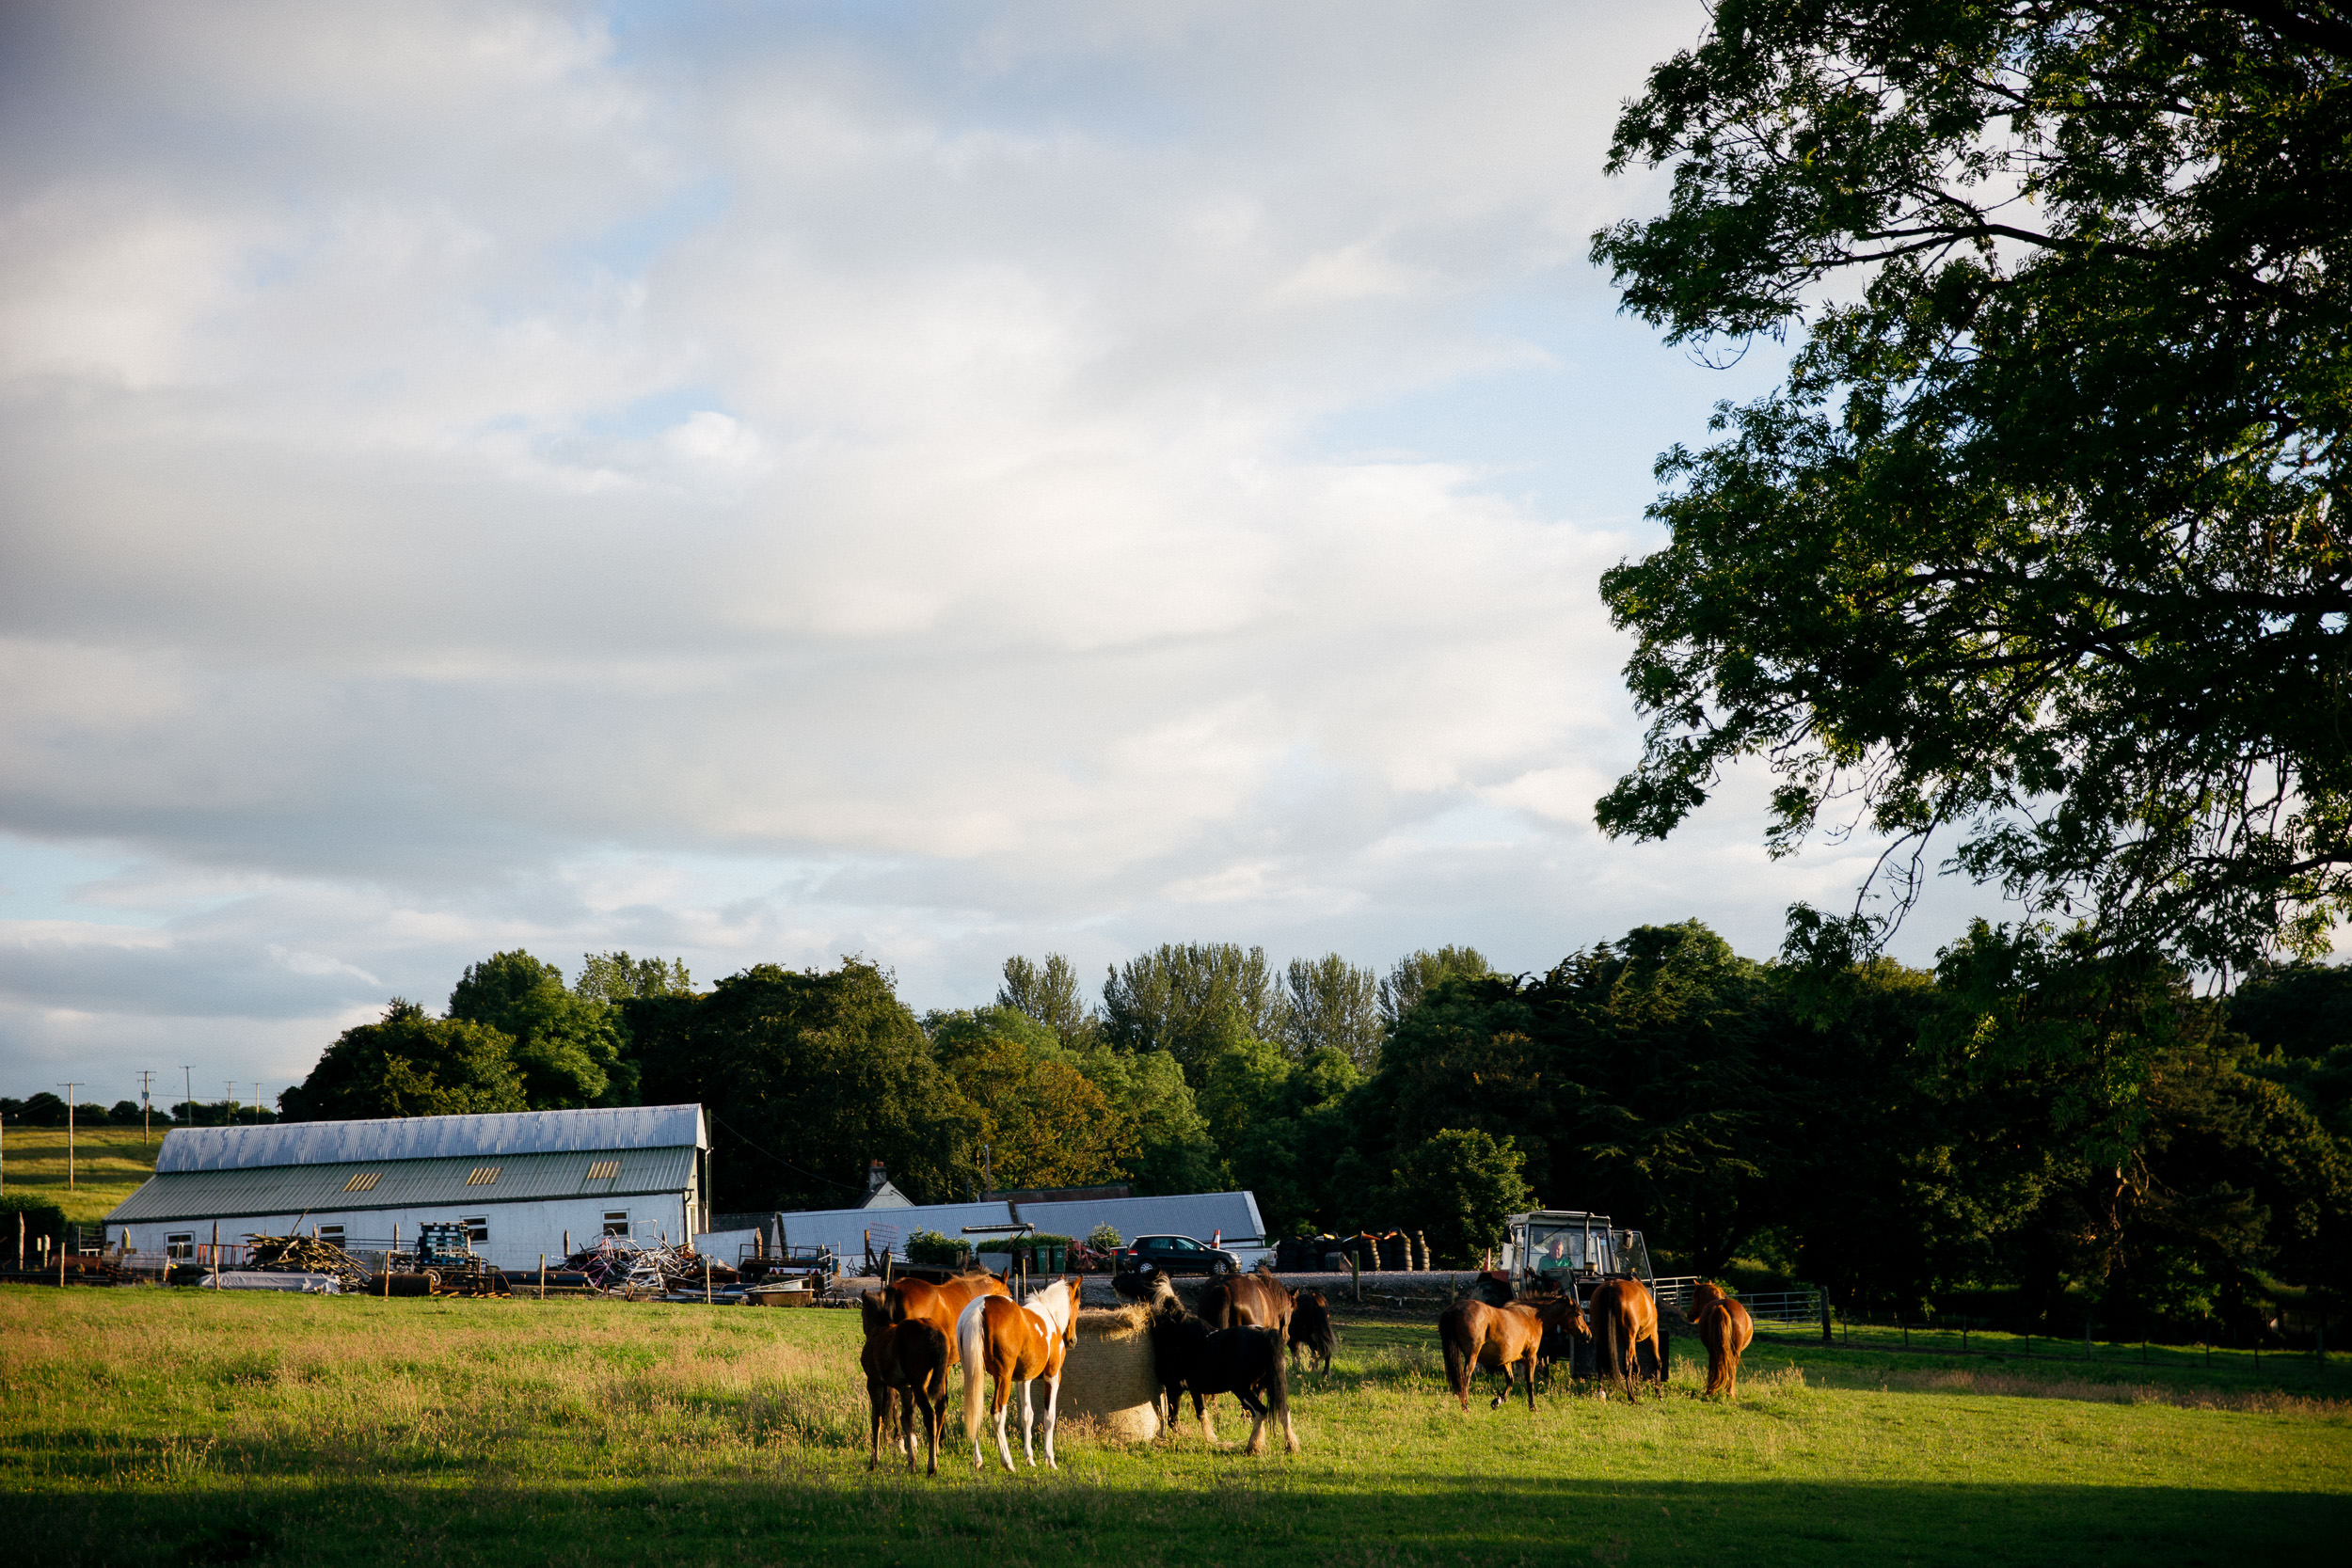 clairebyrnephotography-wedding-photography-ireland-engagement-sunset-farm-horses-38.jpg